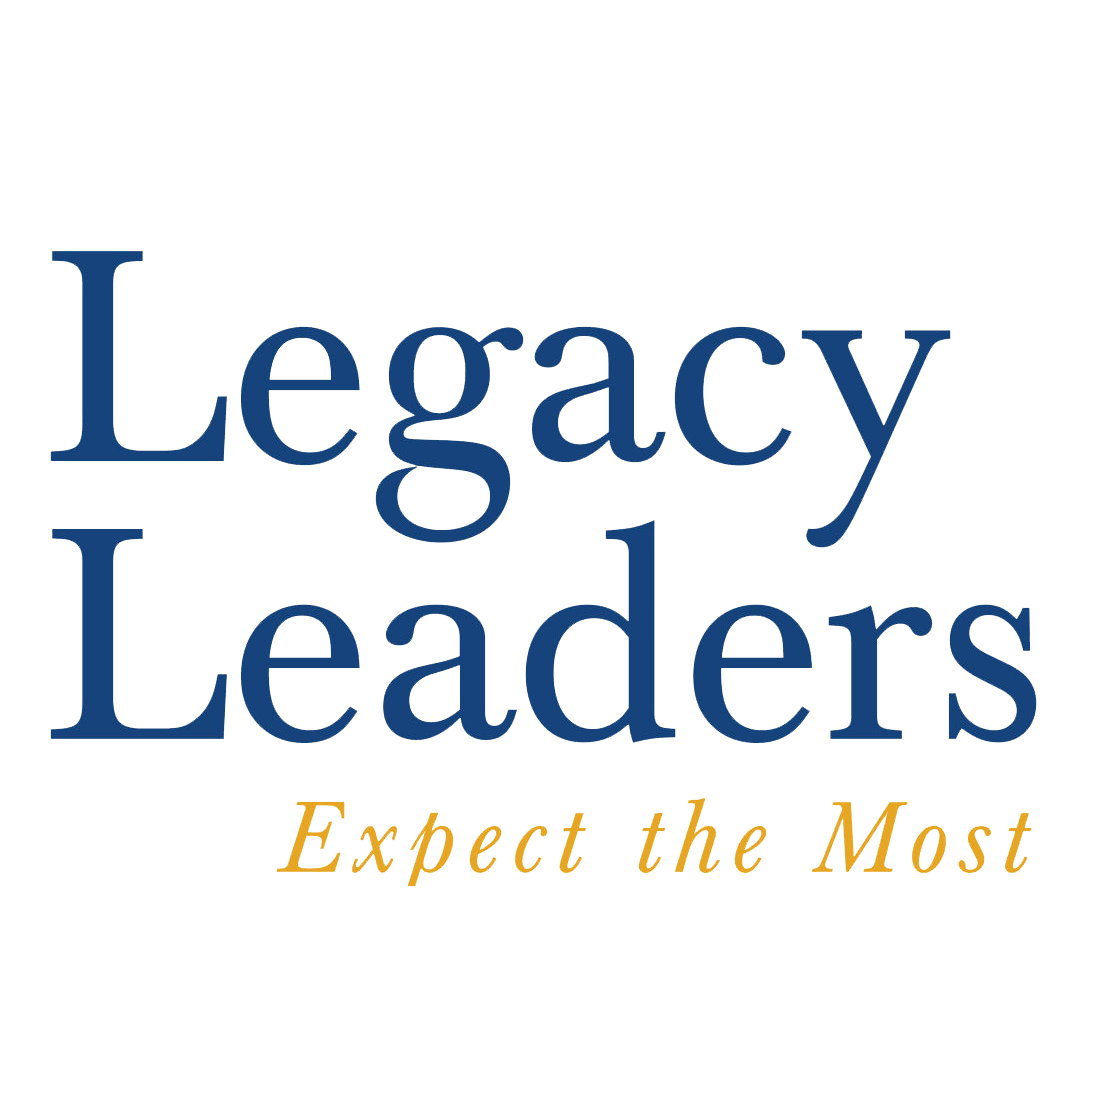 Legacy Leaders Logo